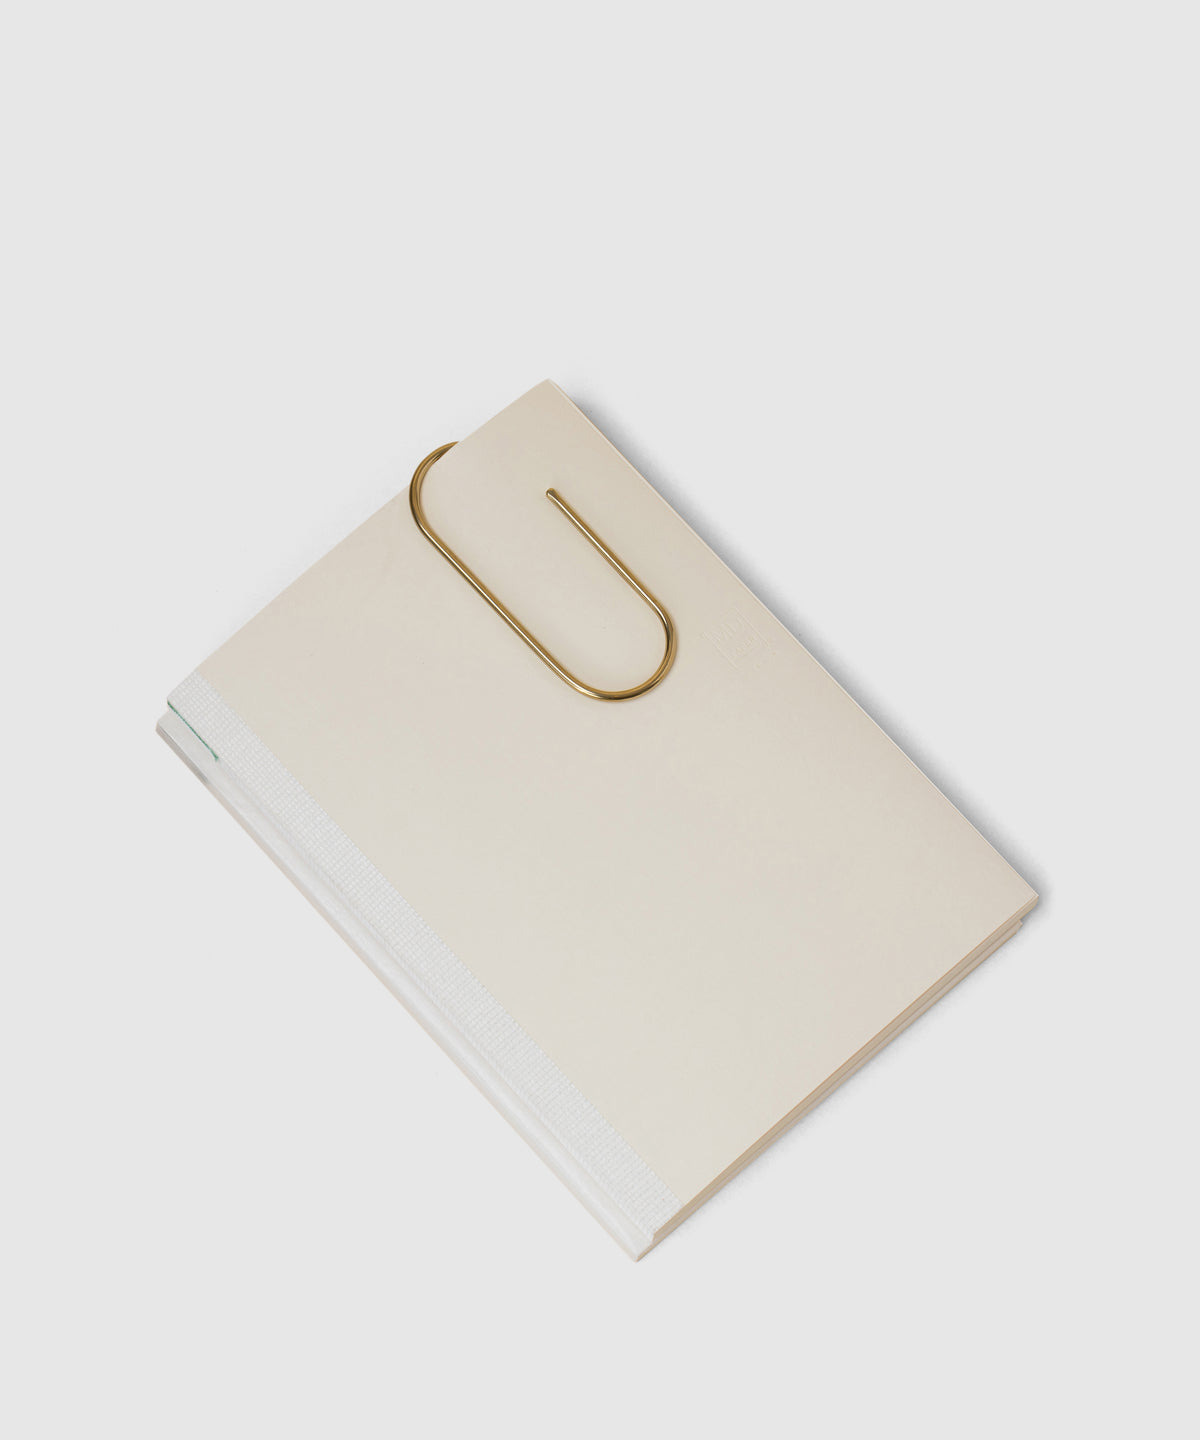 Lined Japanese Notebook / Journal